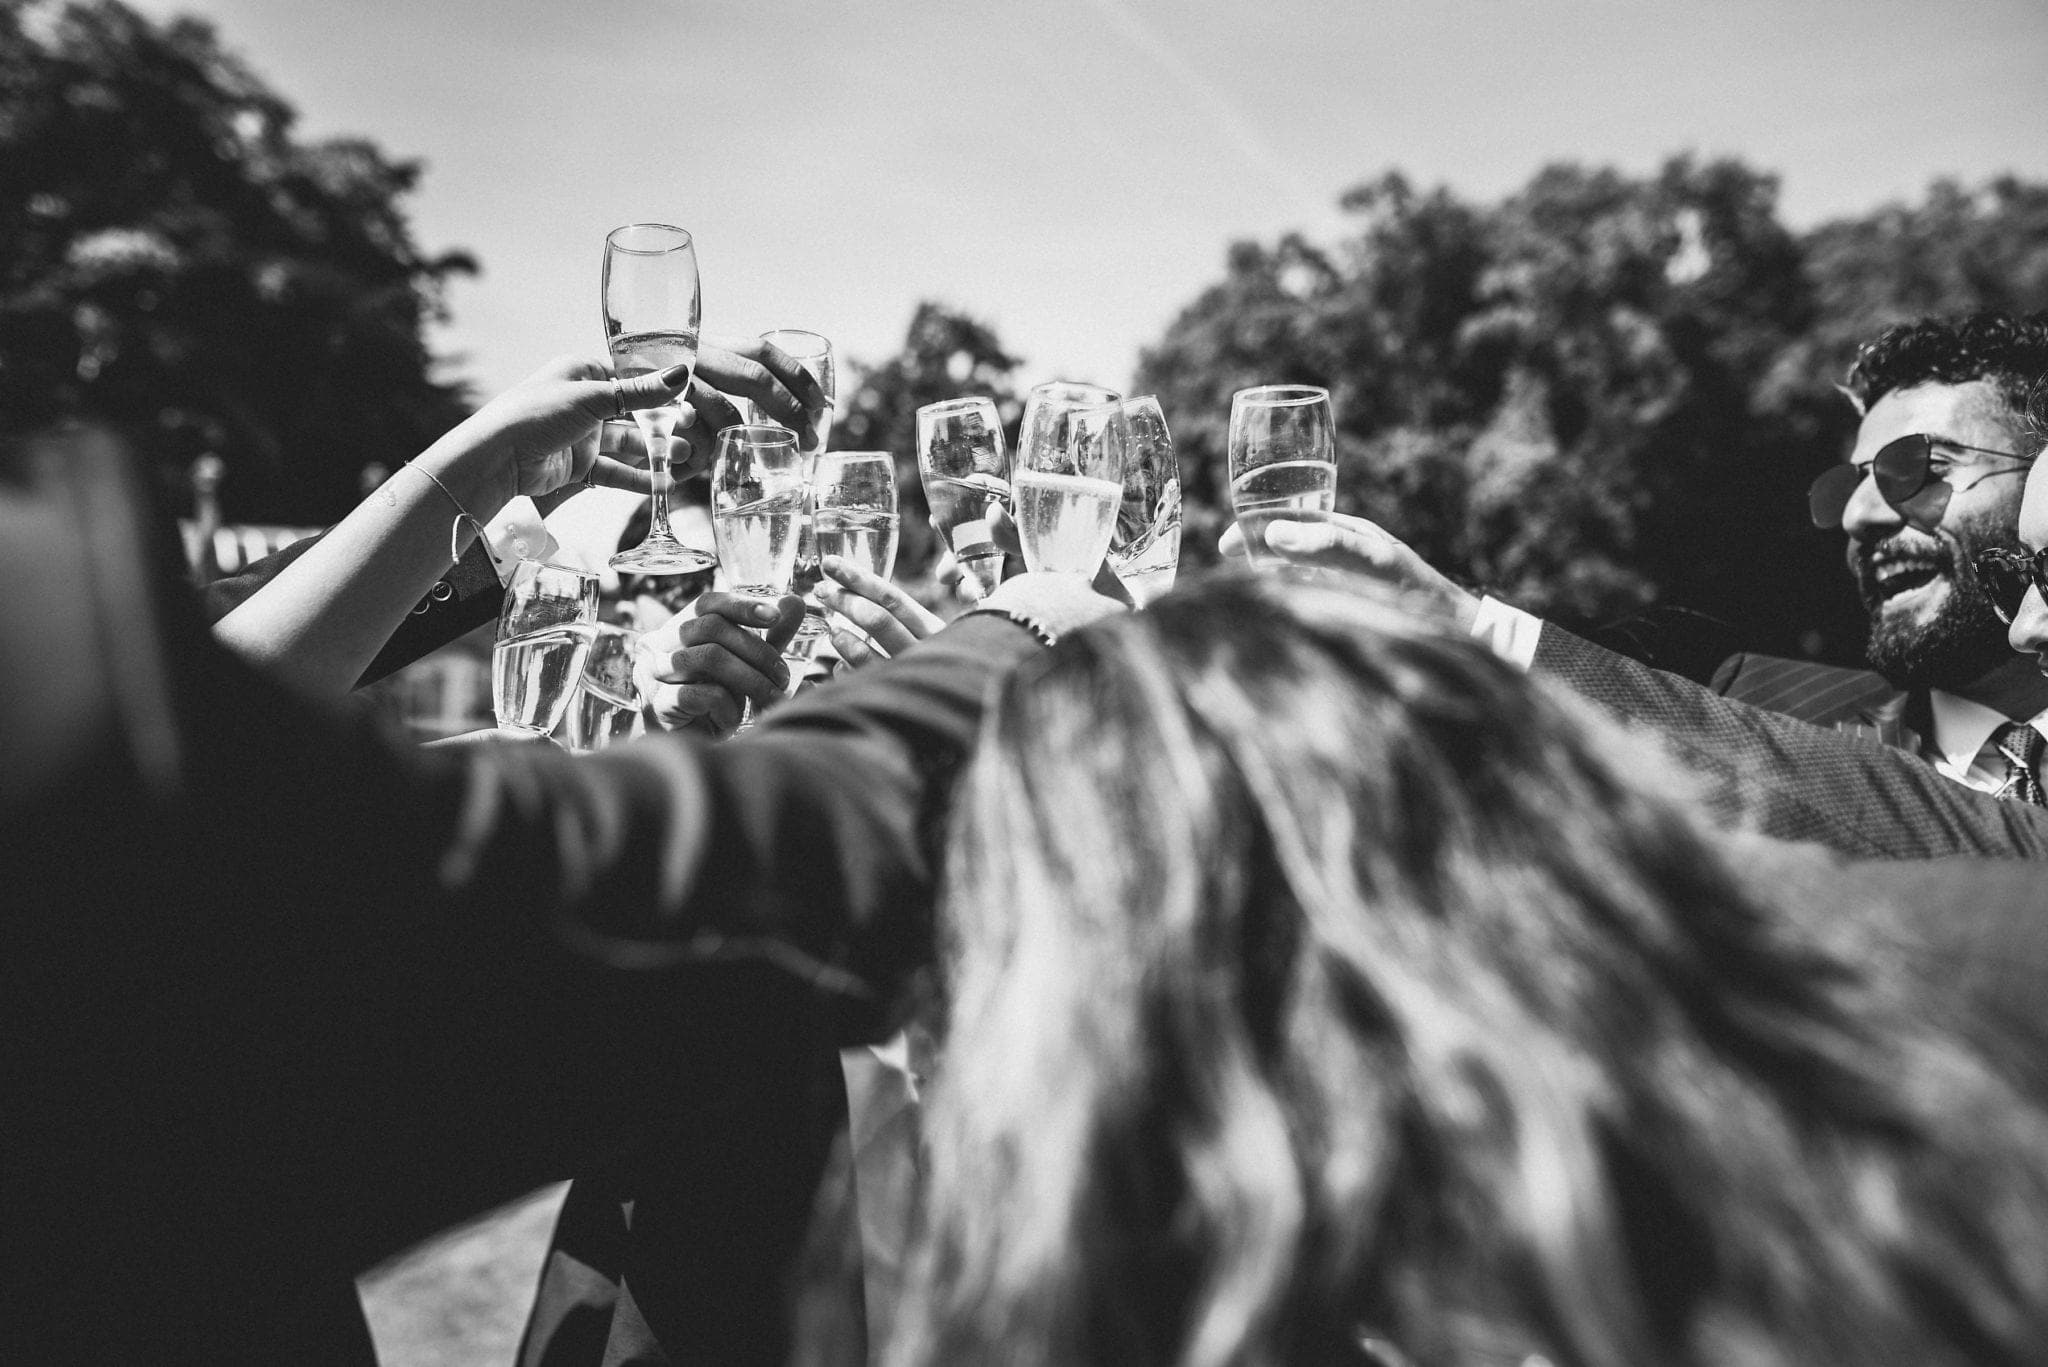 Black and white shot of large toast with many champagne glasses clinking together